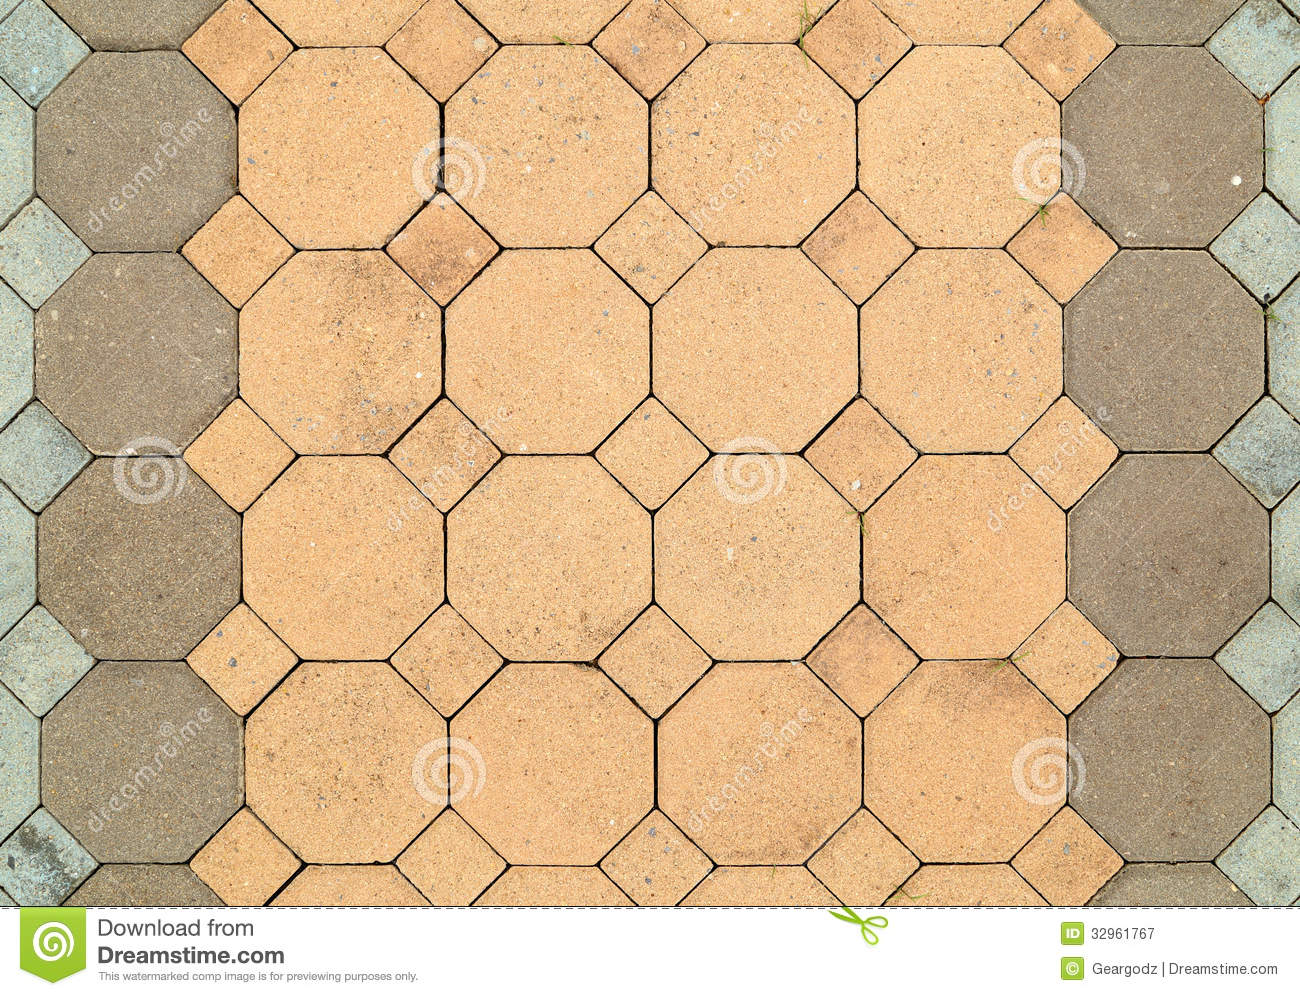 Brick Octagonal Walkway Pavement Texture Stock Image